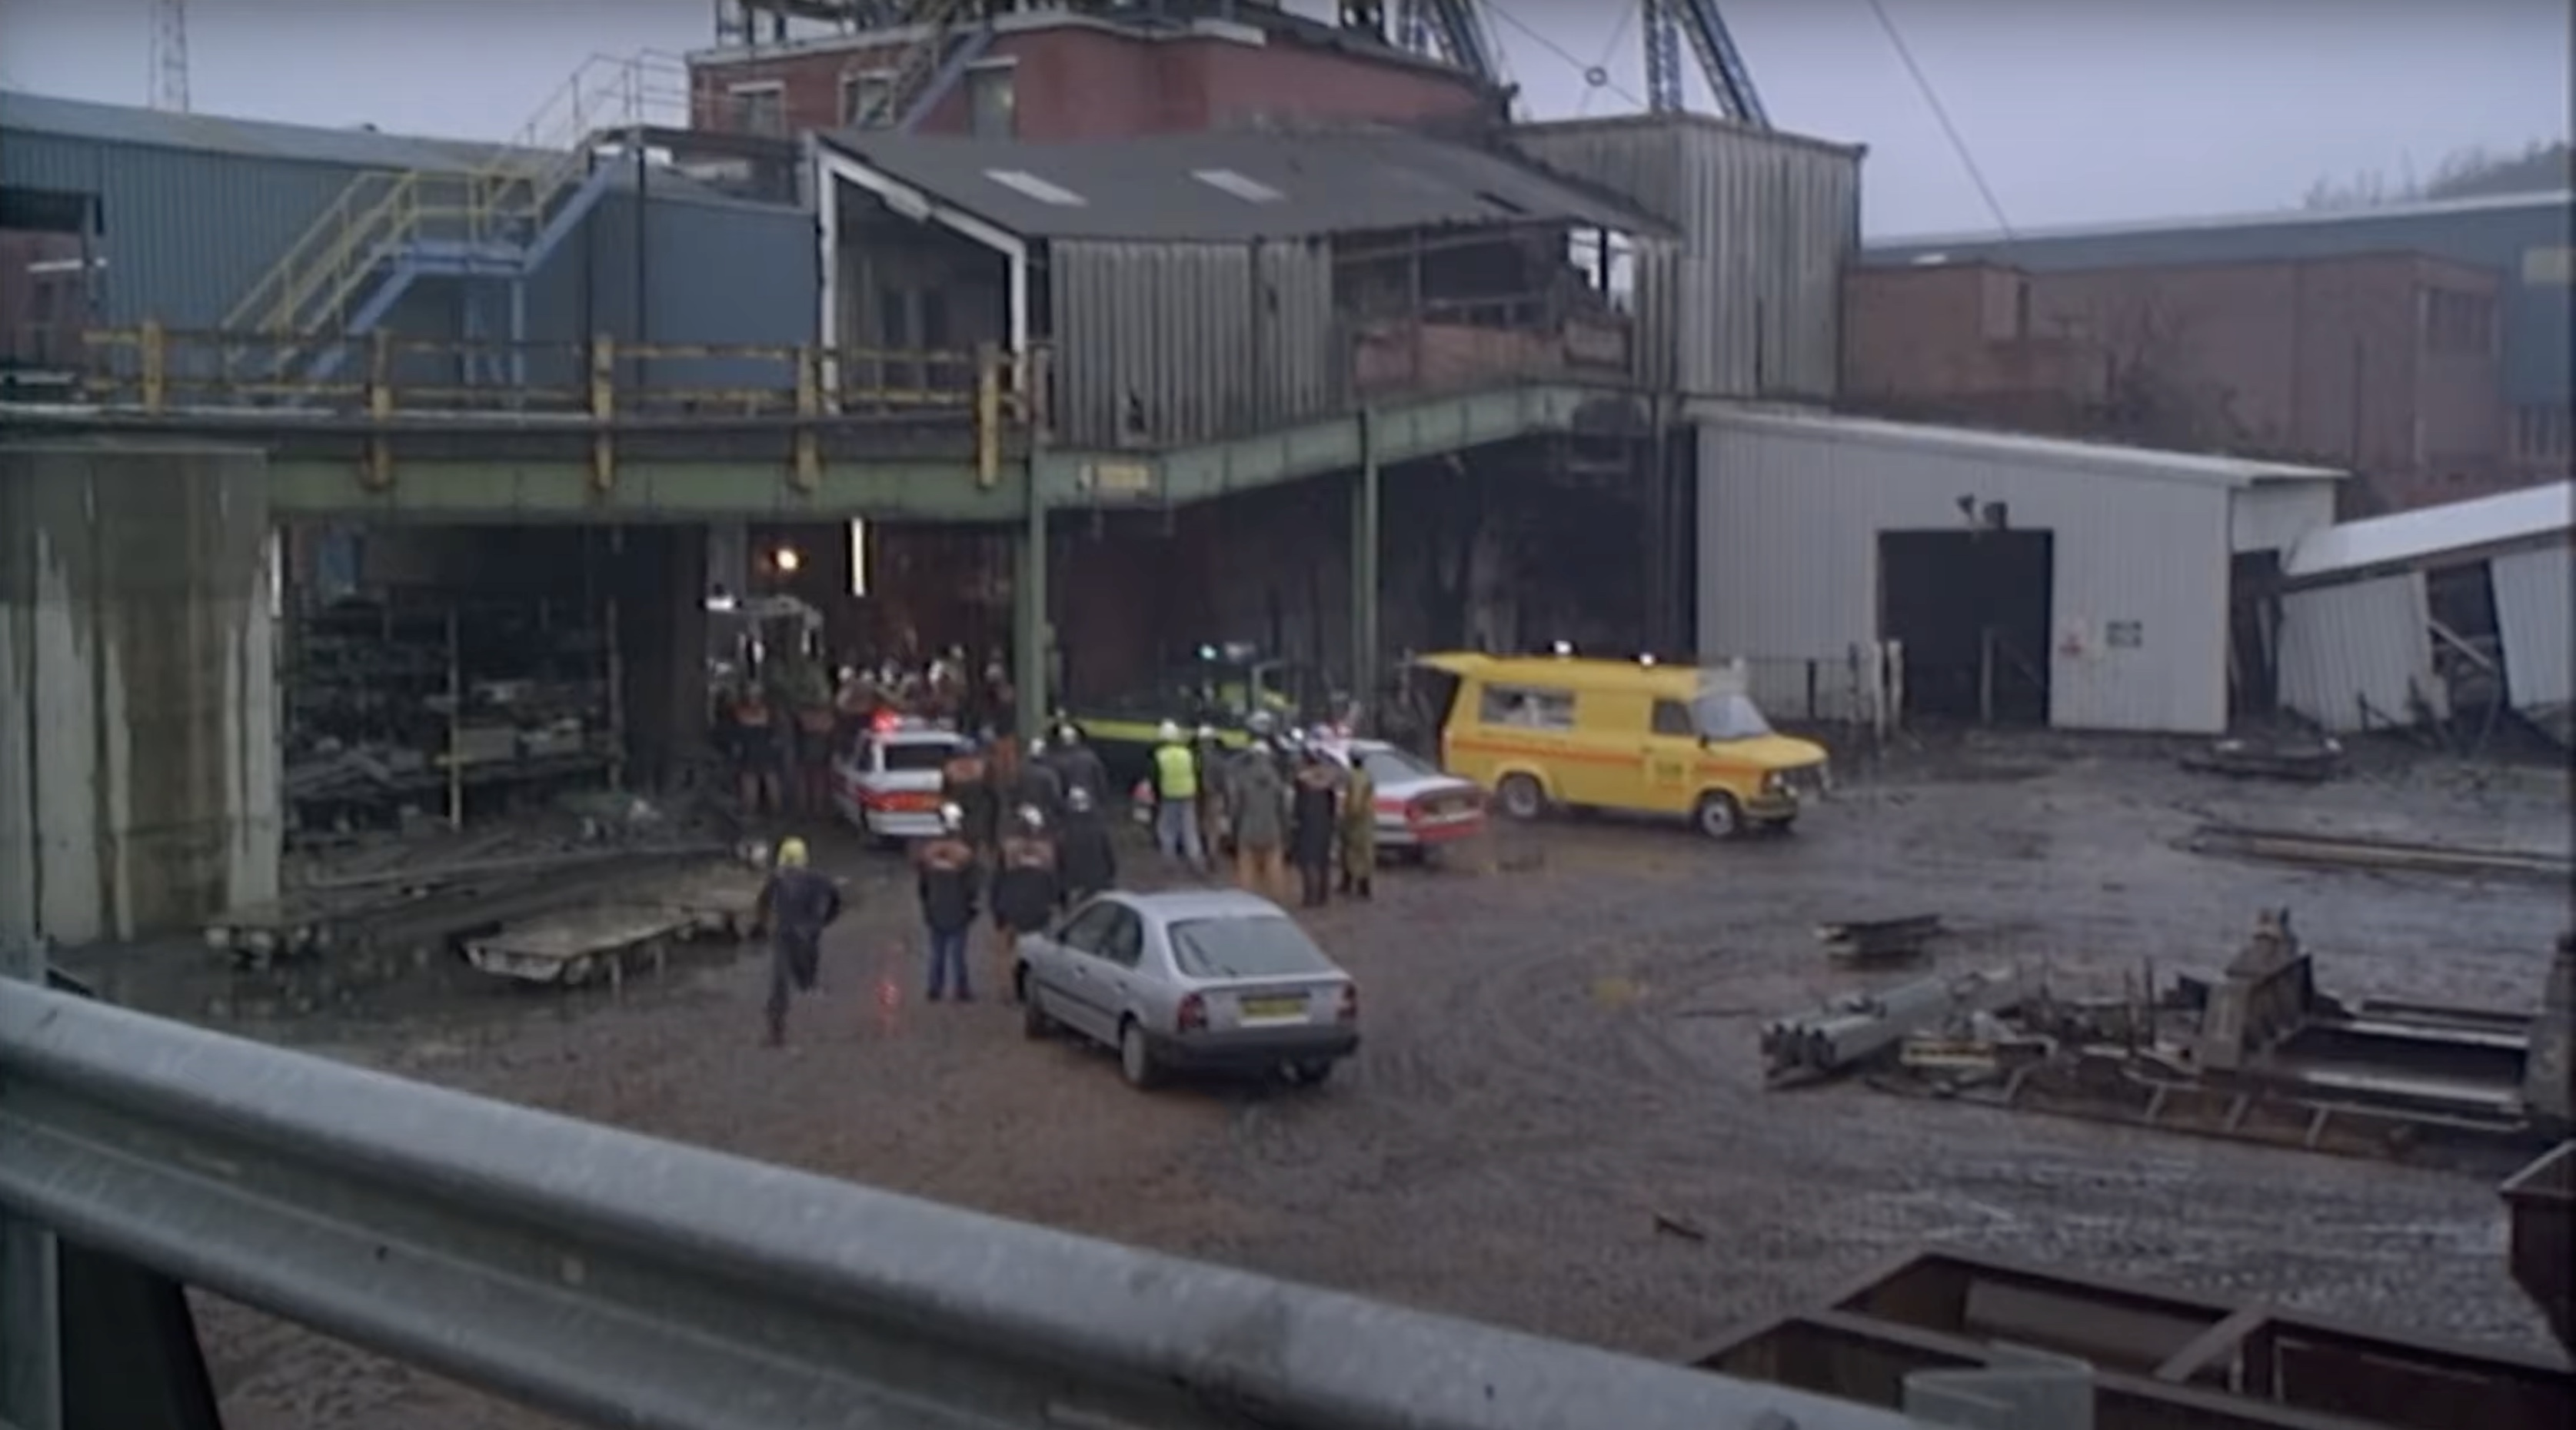 Tragedy at the pit scene - When Saturday Comes Filming Location